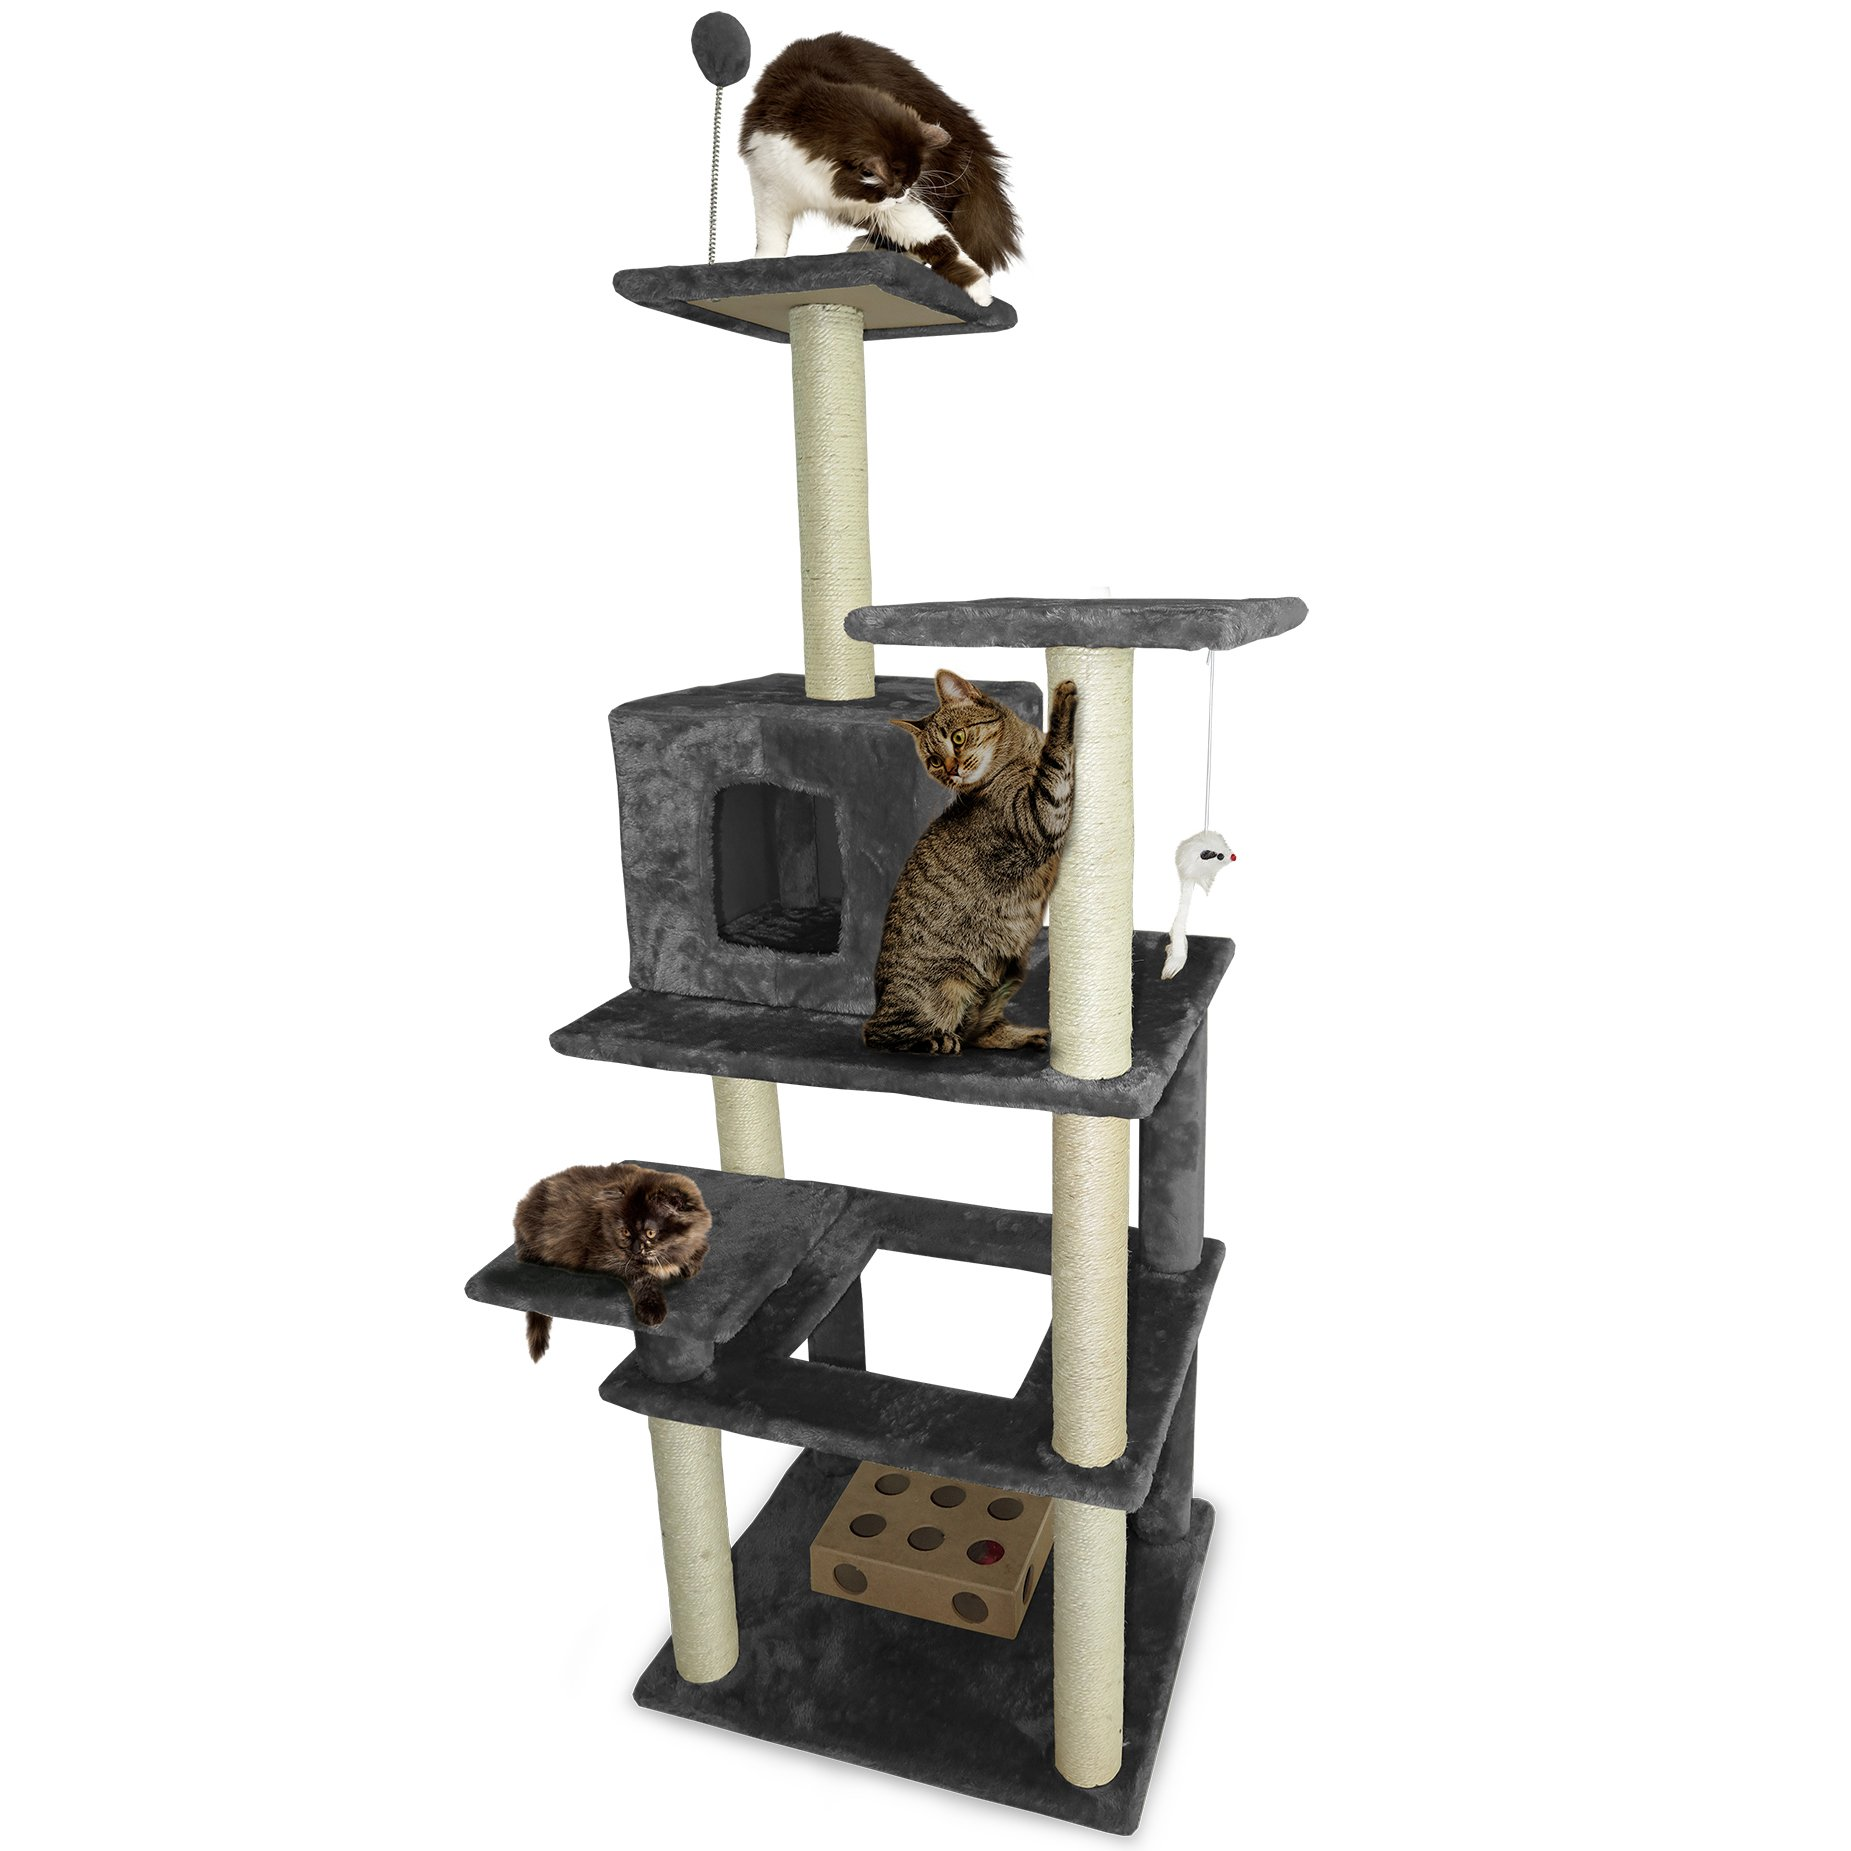 Furhaven Tiger Tough Cat Tree House Furniture for Cats and Kittens, High Rise, Gray